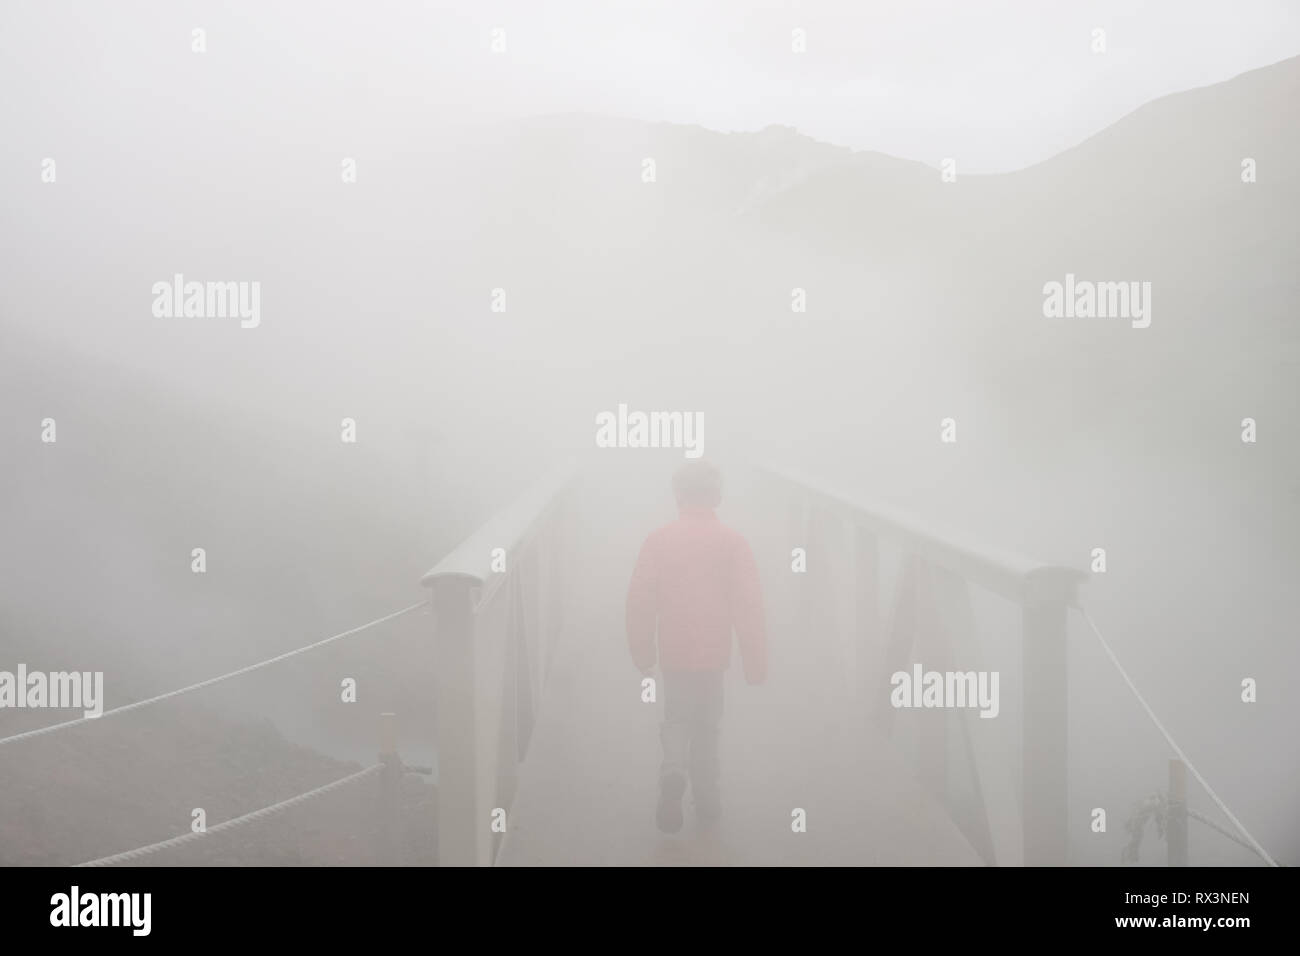 Boy alone walking into the unknown on Iceland adventure in steamy valley - Stock Image